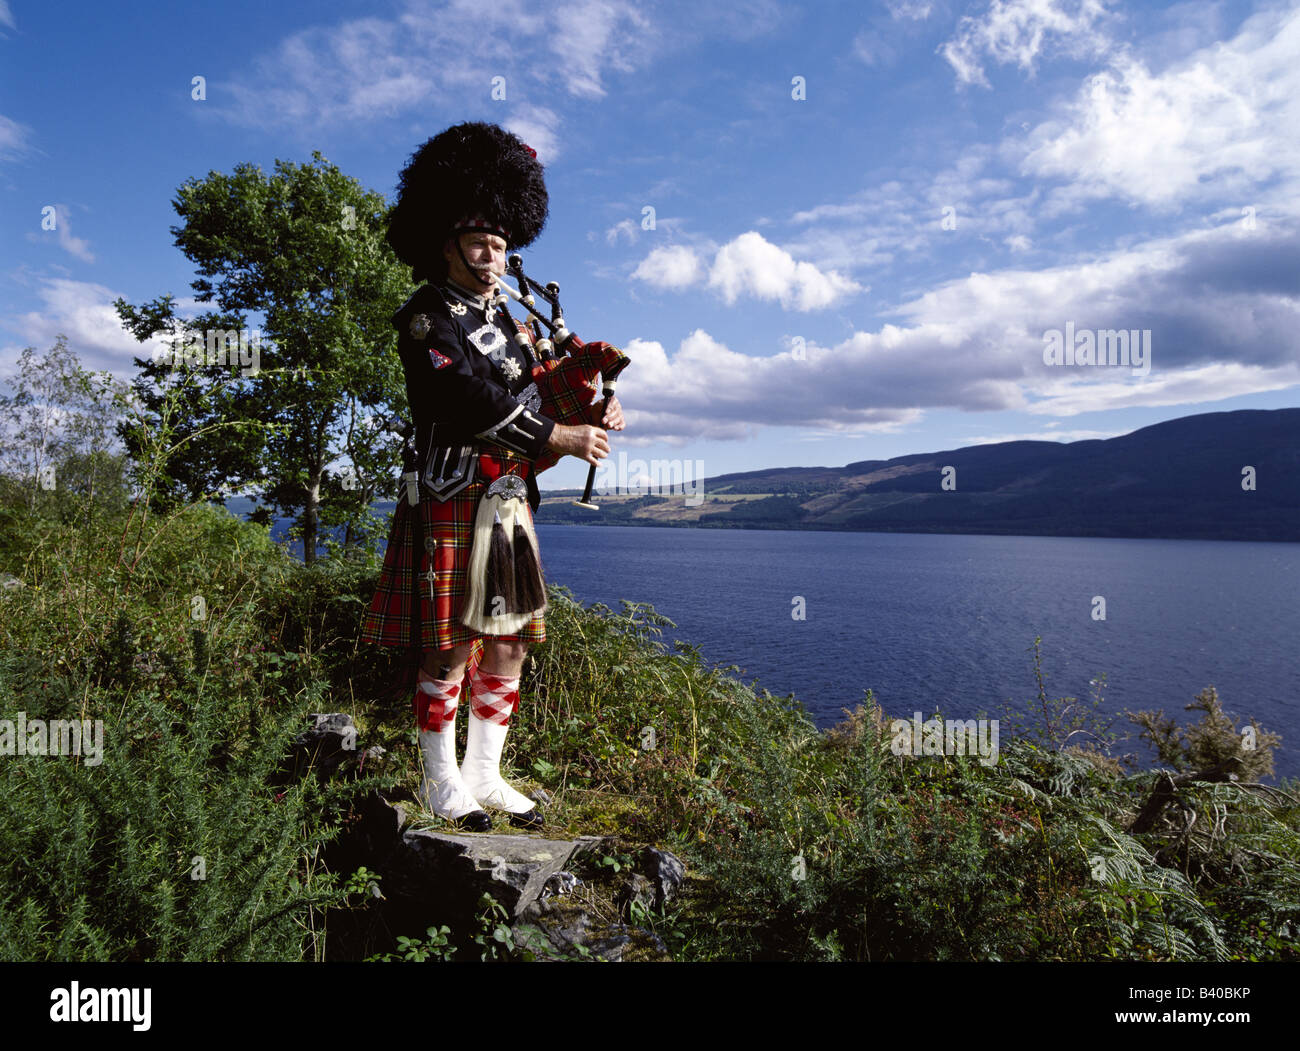 dh  LOCH NESS SCOTLAND Scottish piper bagpipes tartan kilt uniform piping bagpiper in highlands traditional highland dress bag pipes man Stock Photo